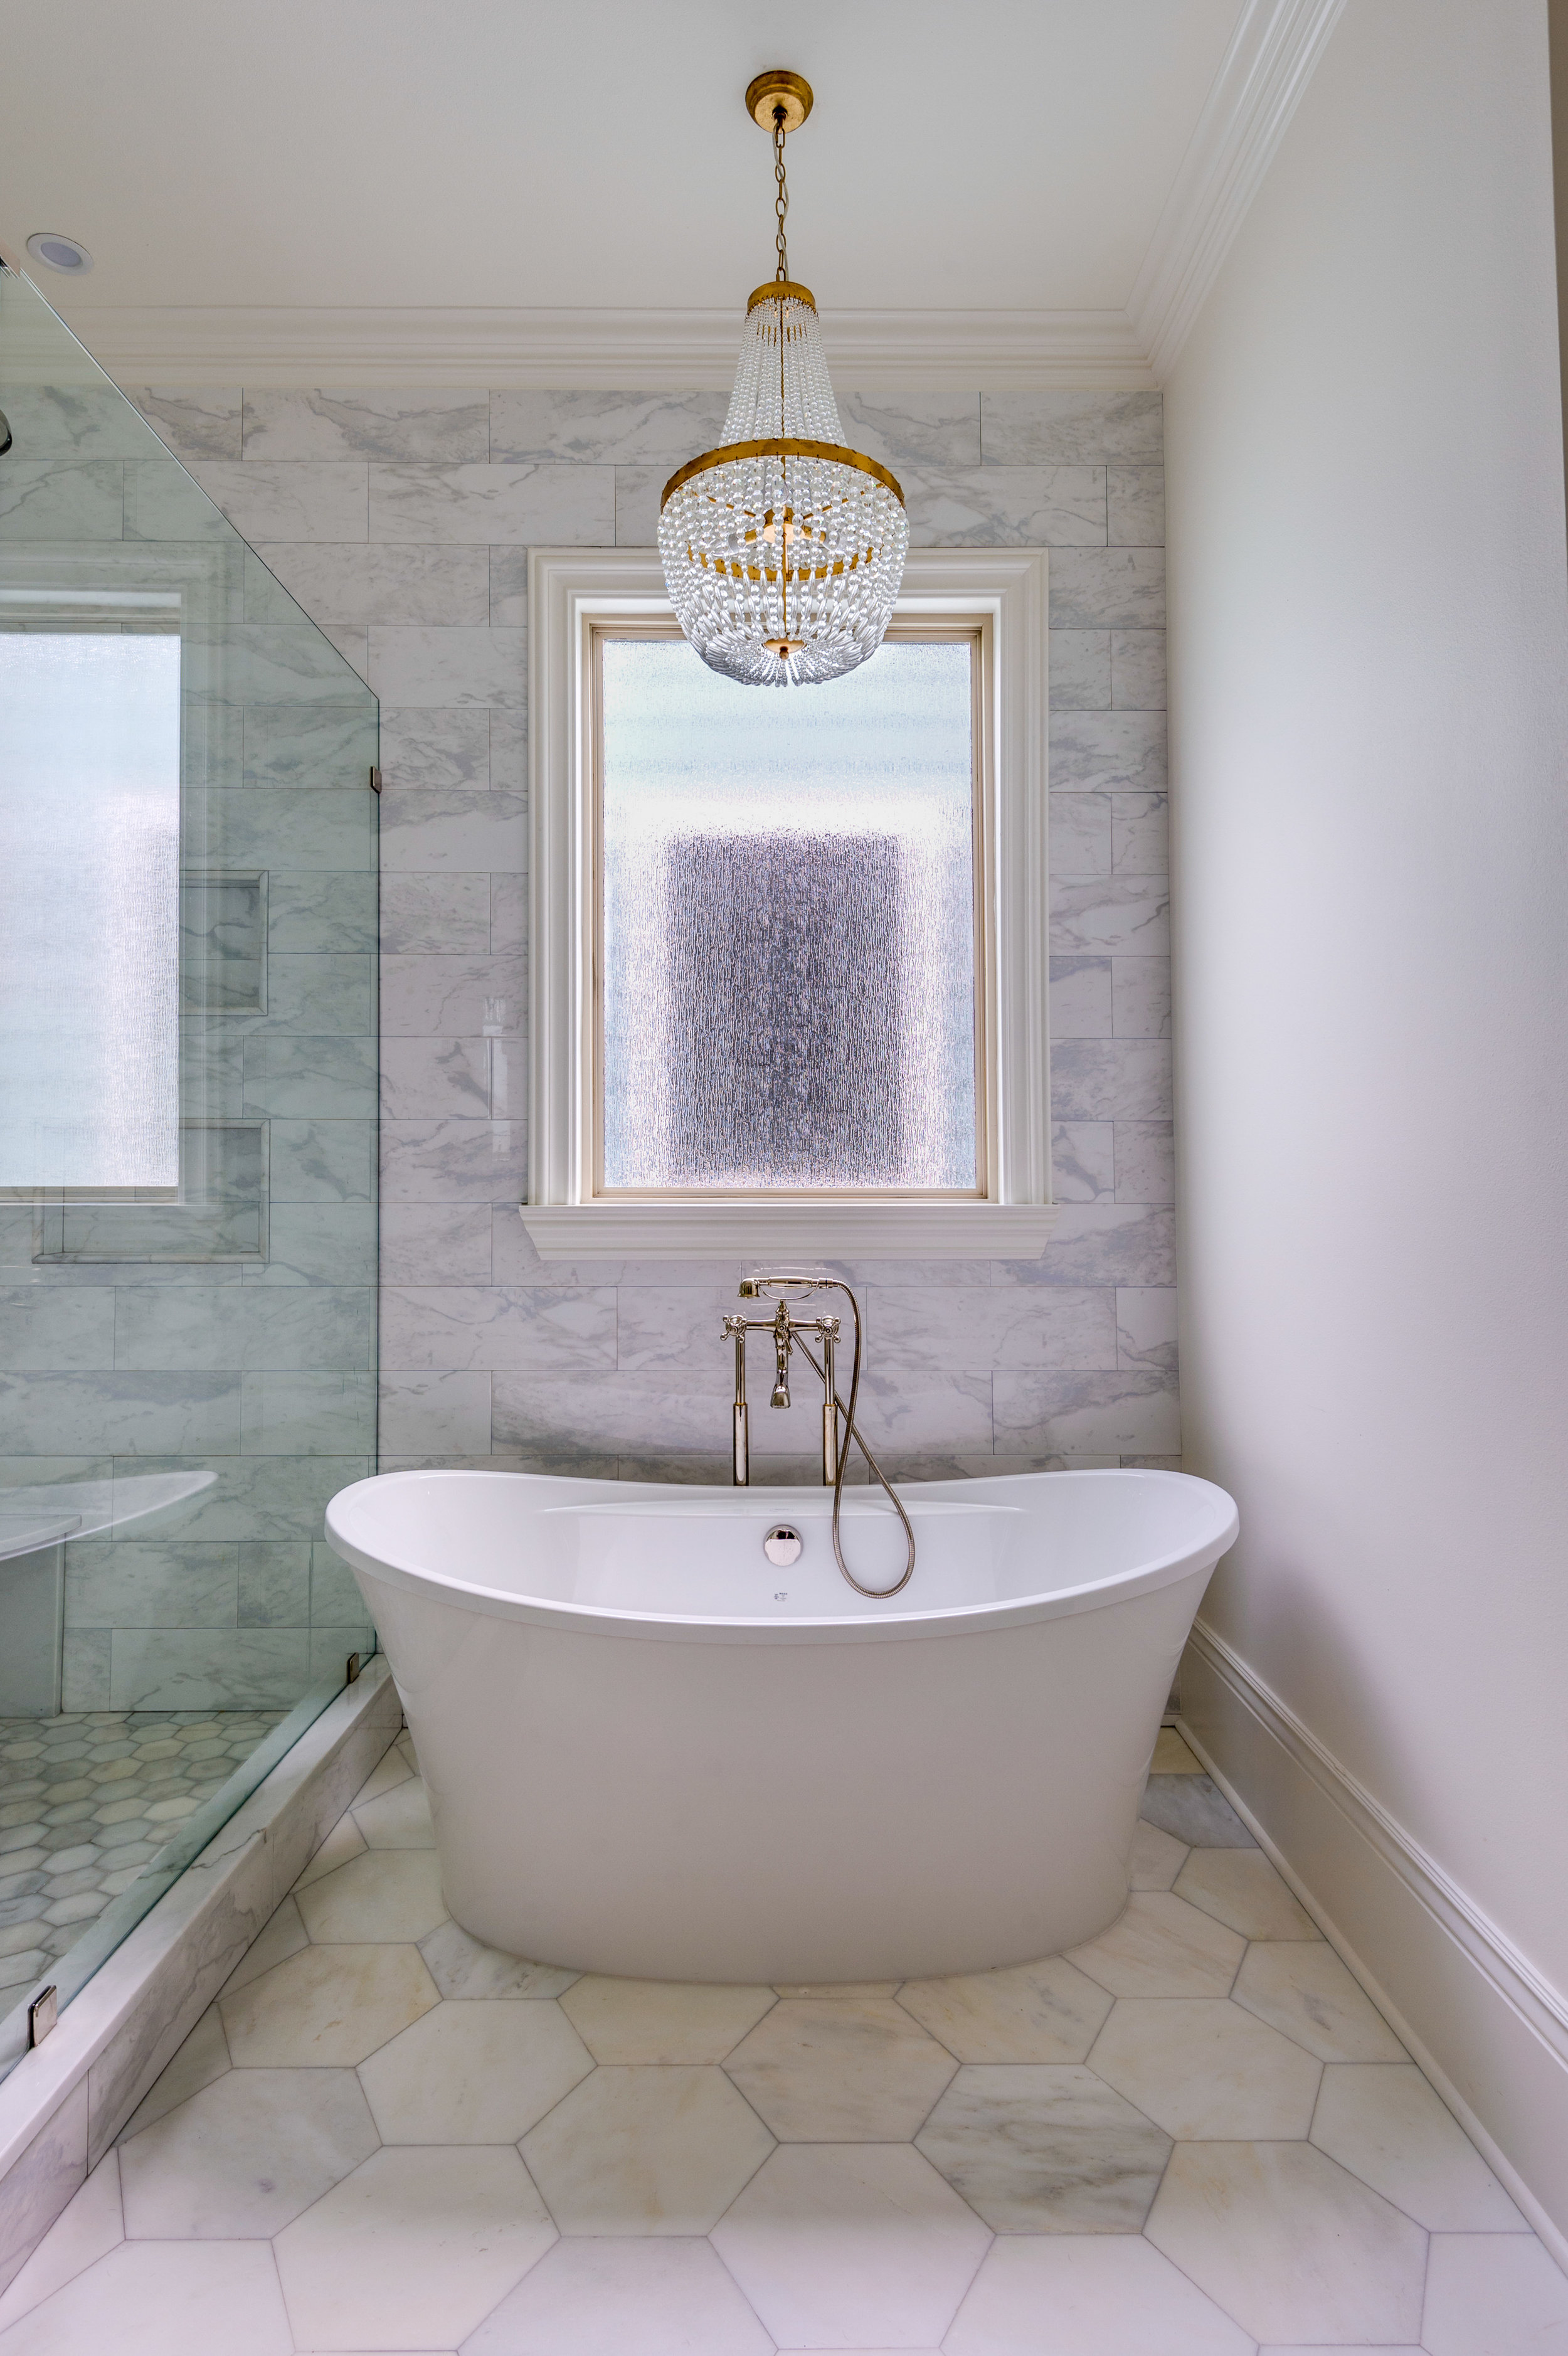 master bathroom tub chandelier interior design consultant metairie uptown khb interiors